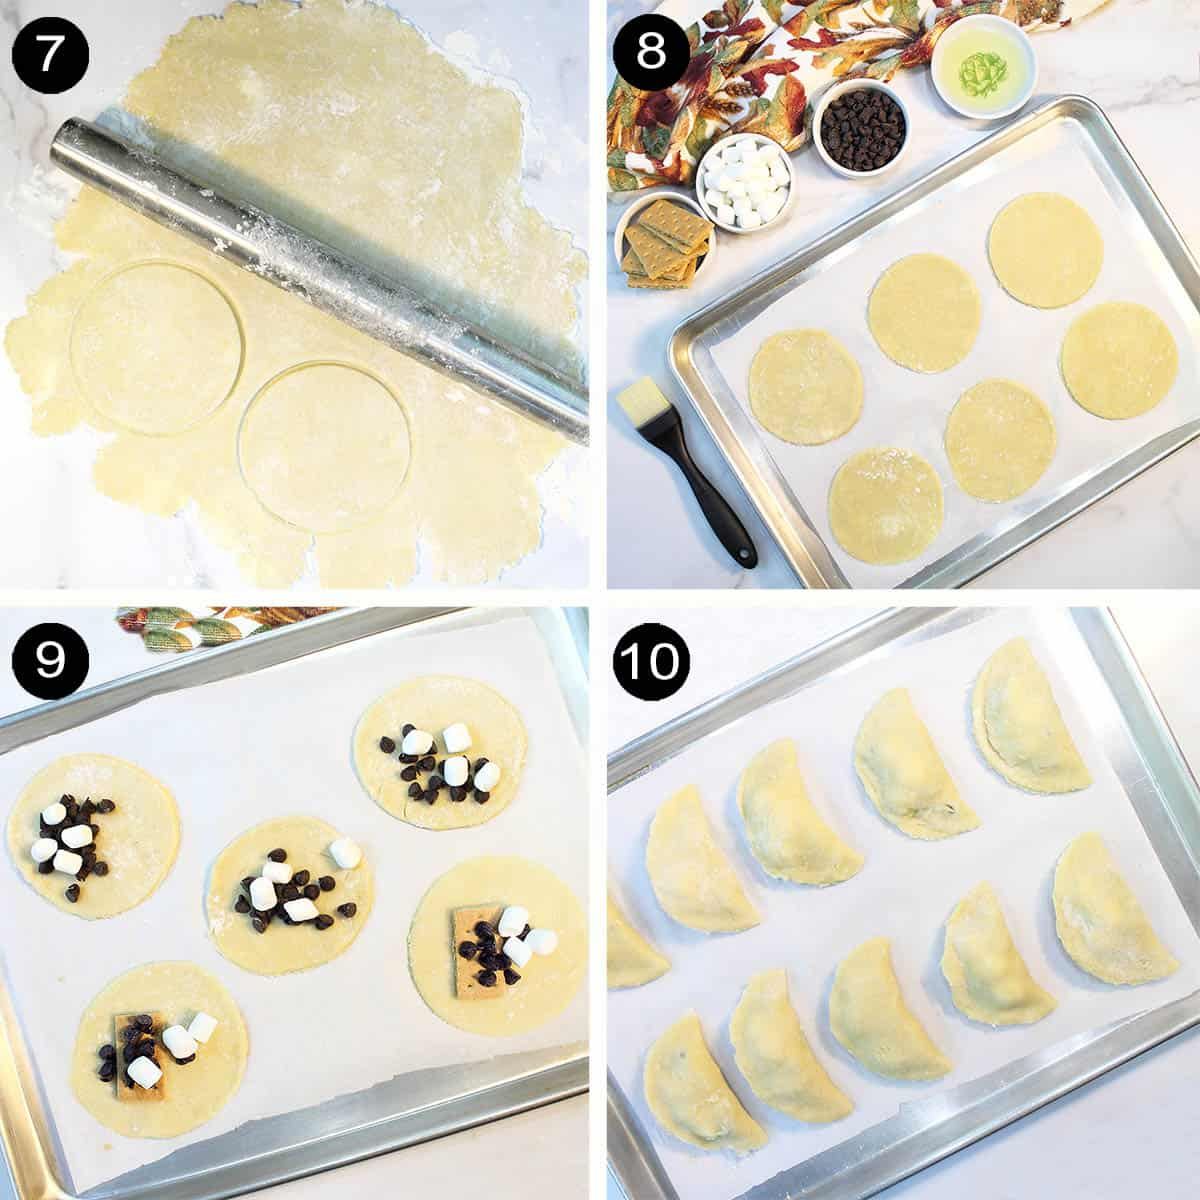 Rolling dough and filling with chocolate chips and marshmallows.